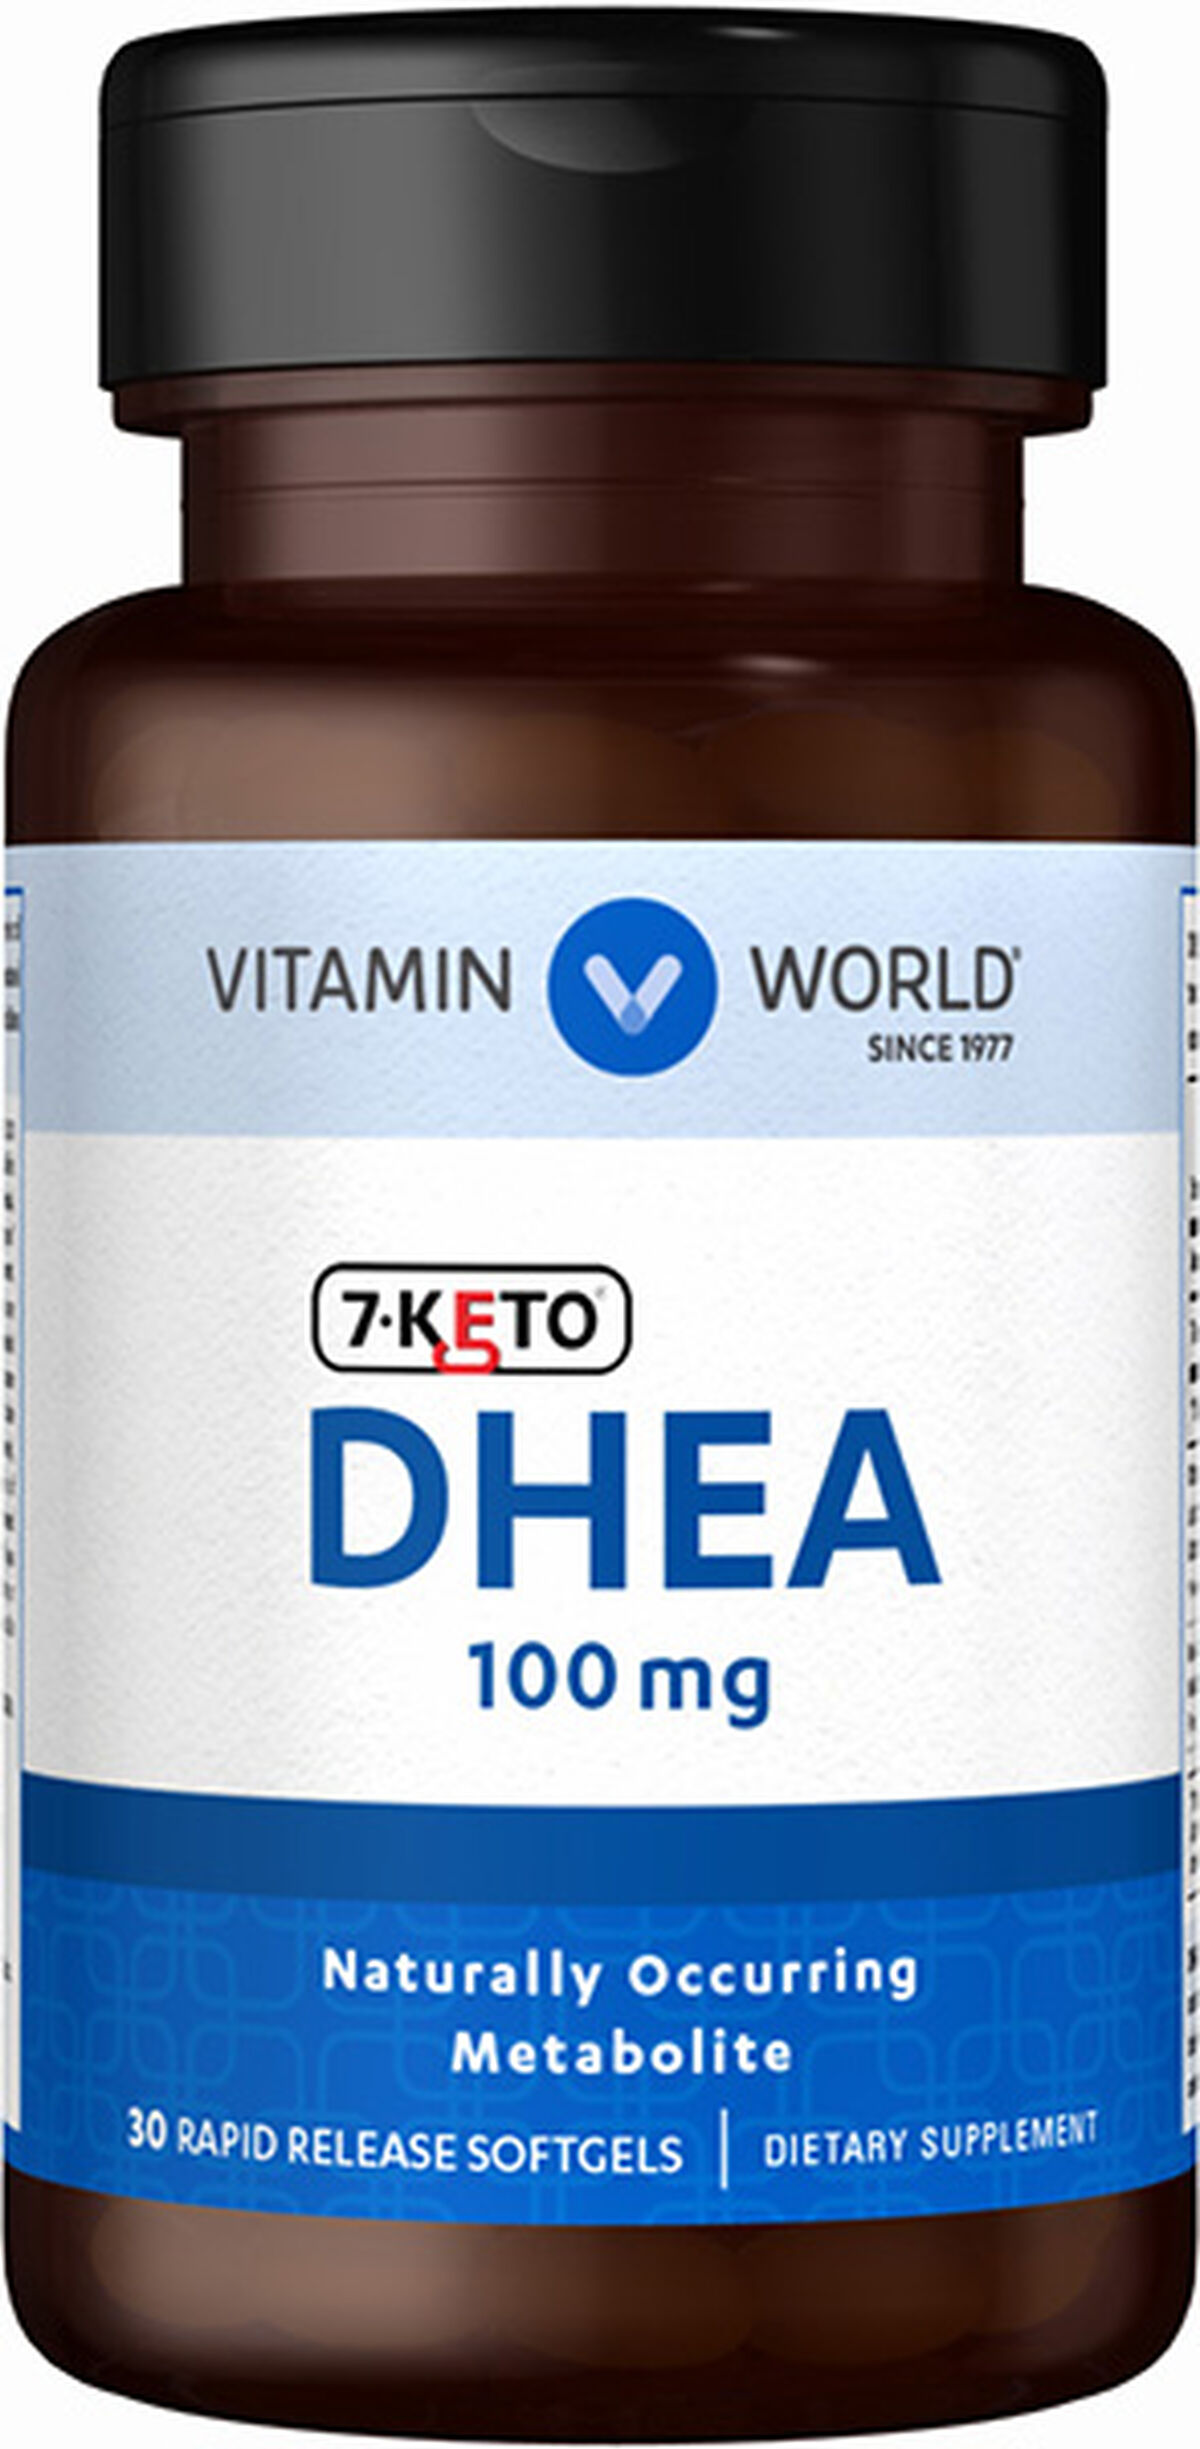 7-Keto DHEA 100mg | Vitamin World | Tuggl